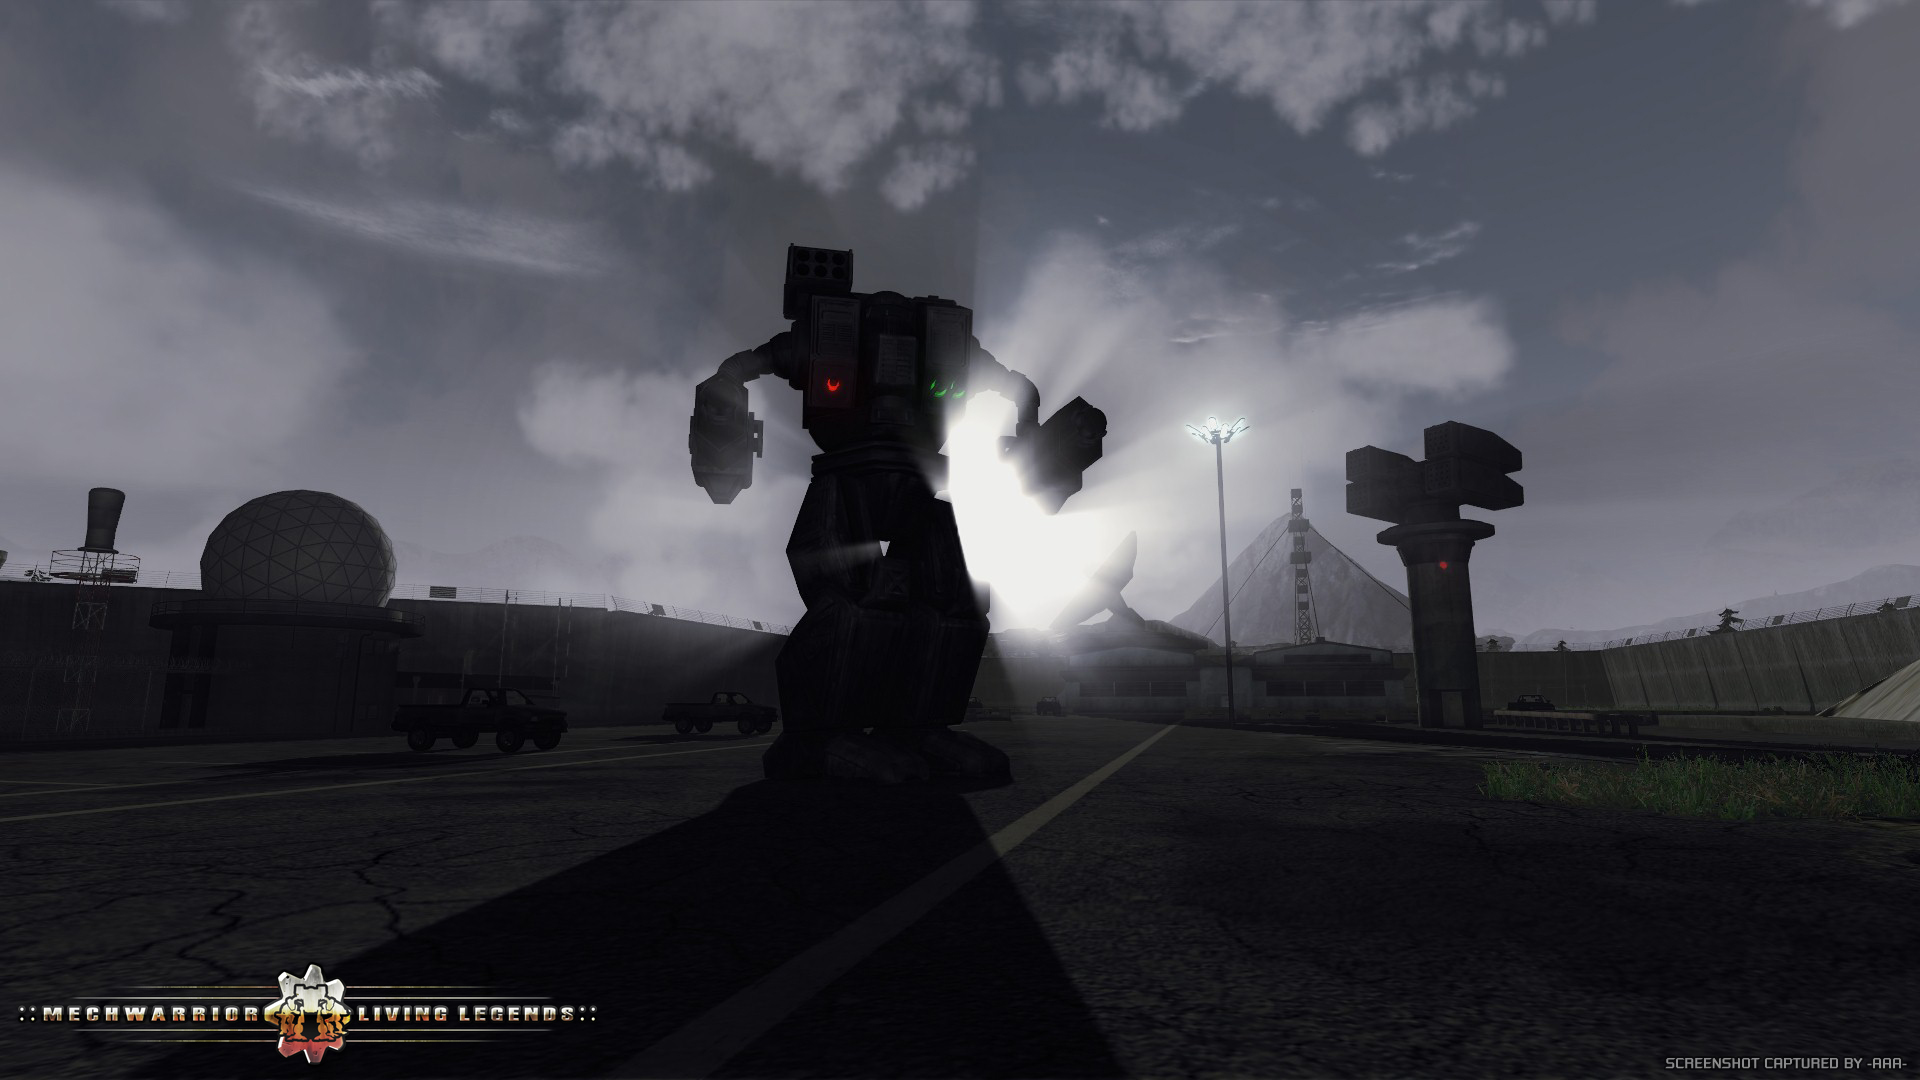 Mechwarrior Wallpaper 1920X1080 wallpaper   358048 1920x1080